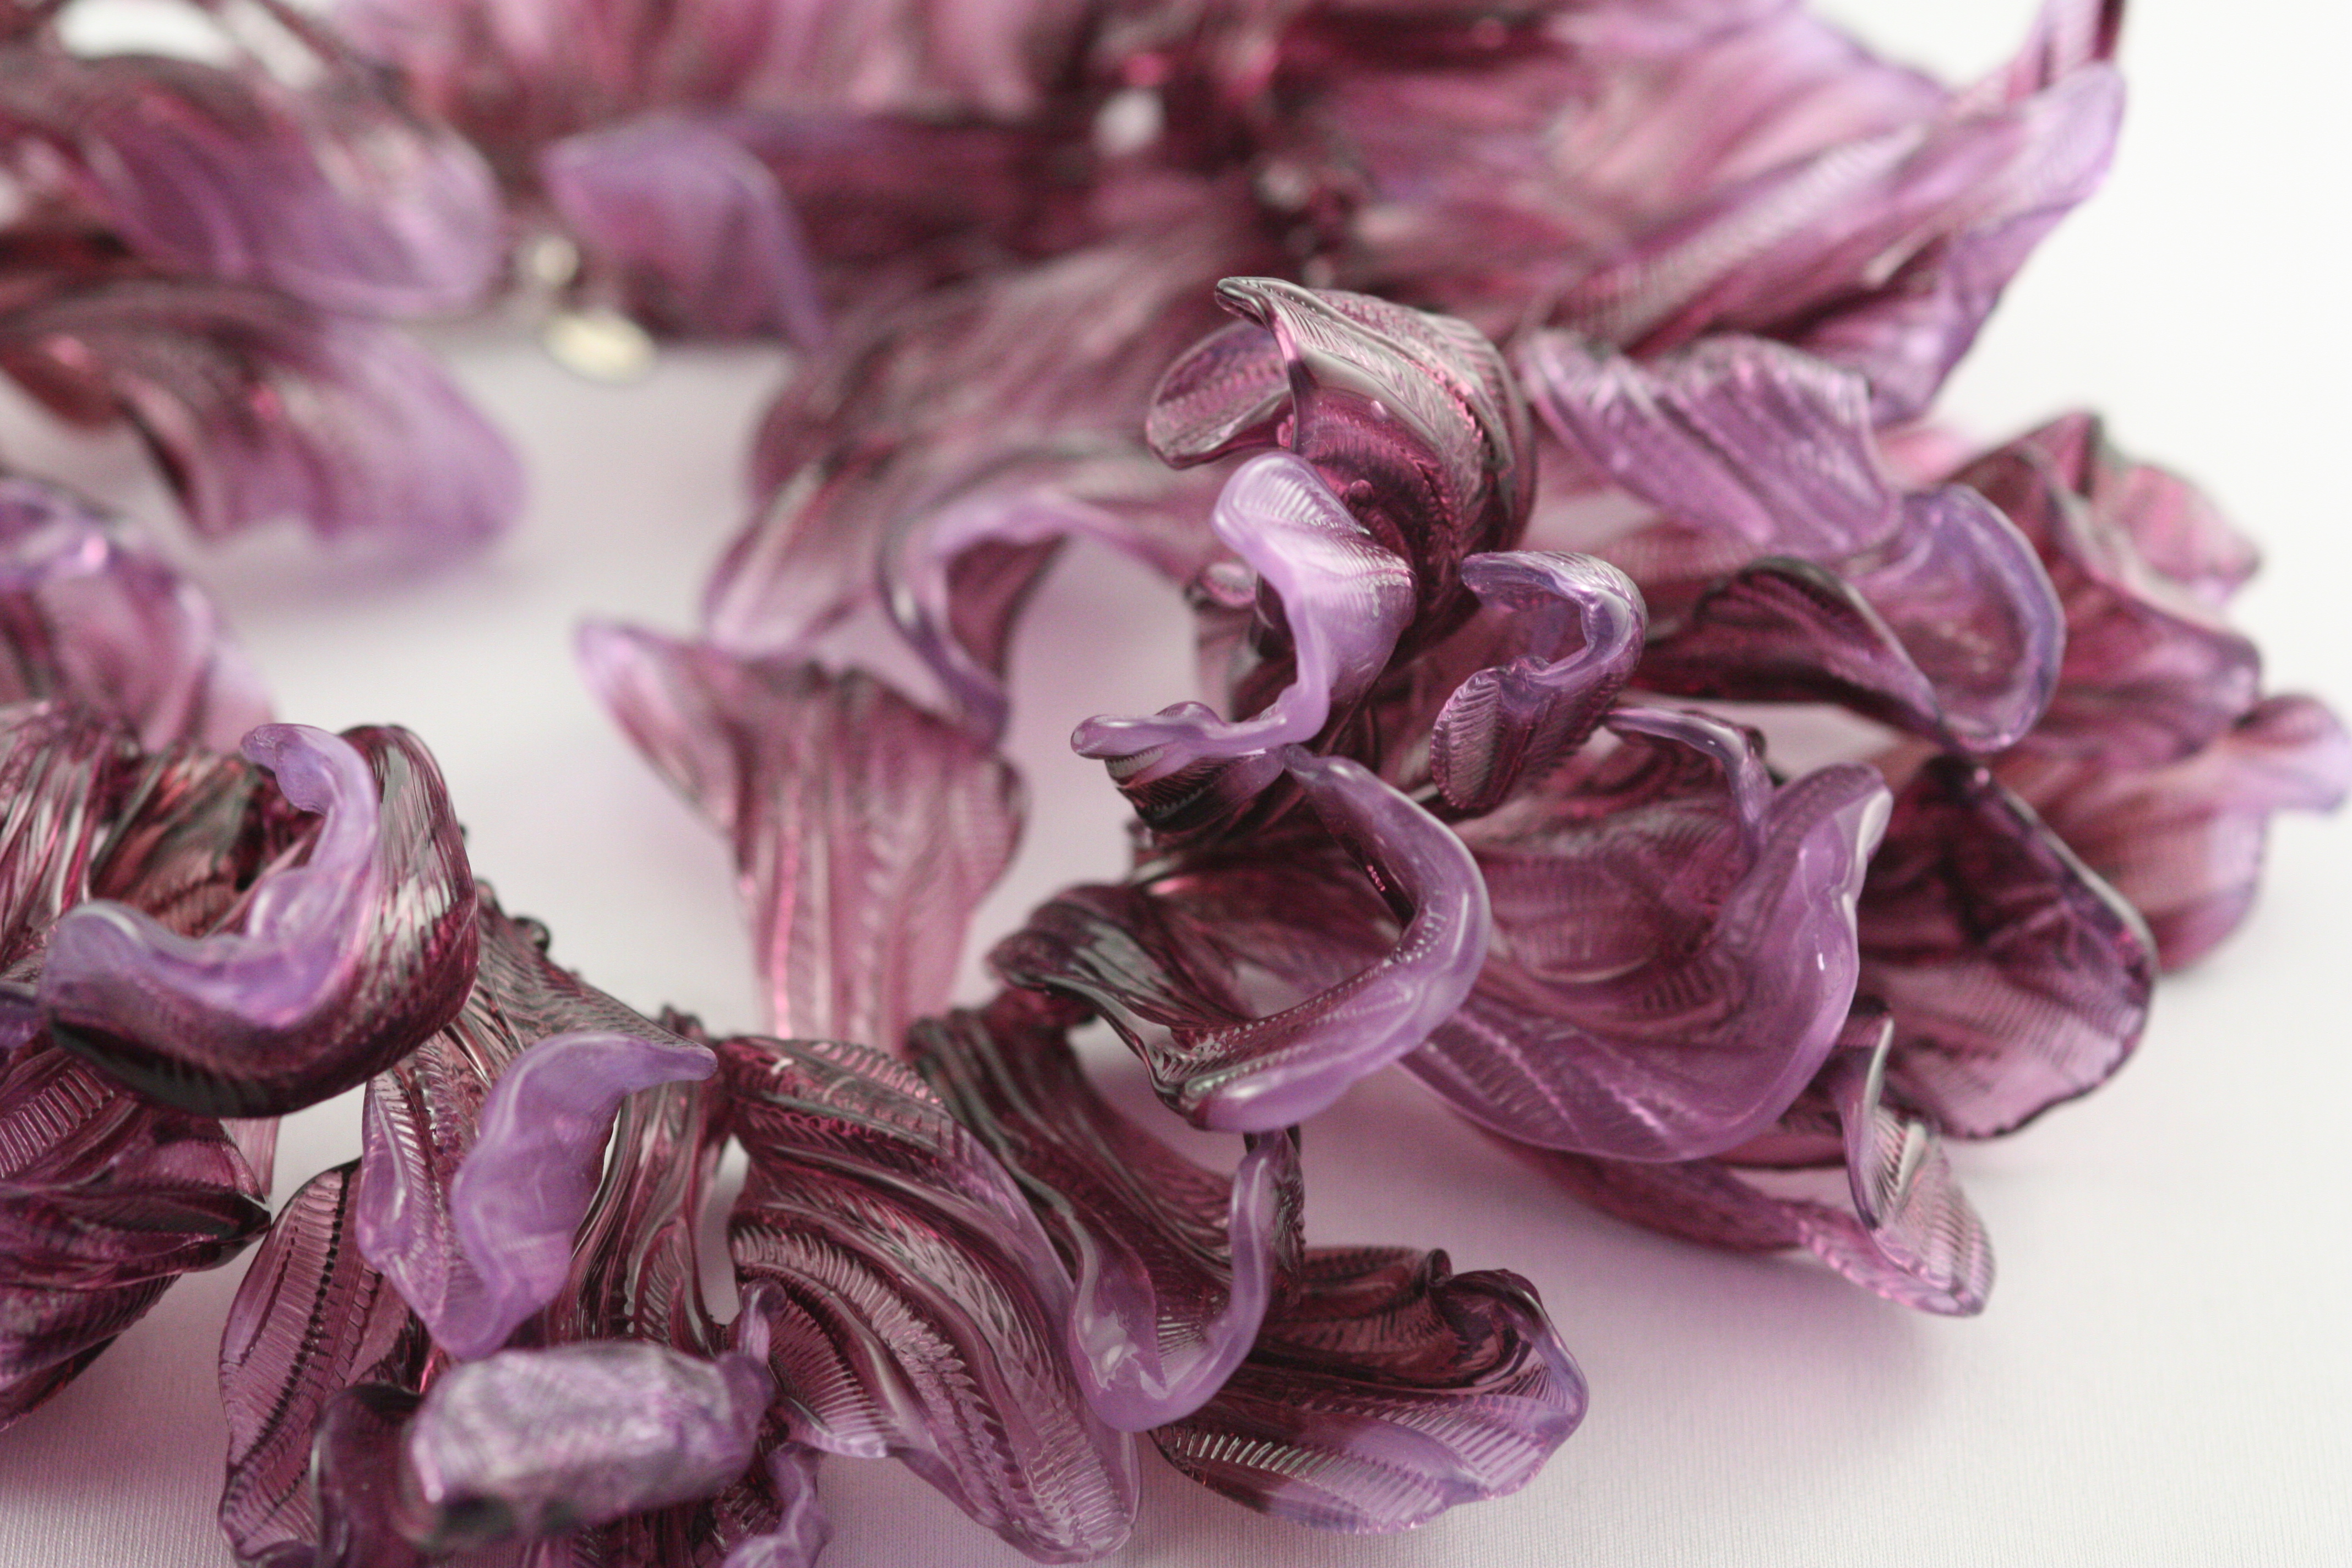 Puple magnolia necklace detail